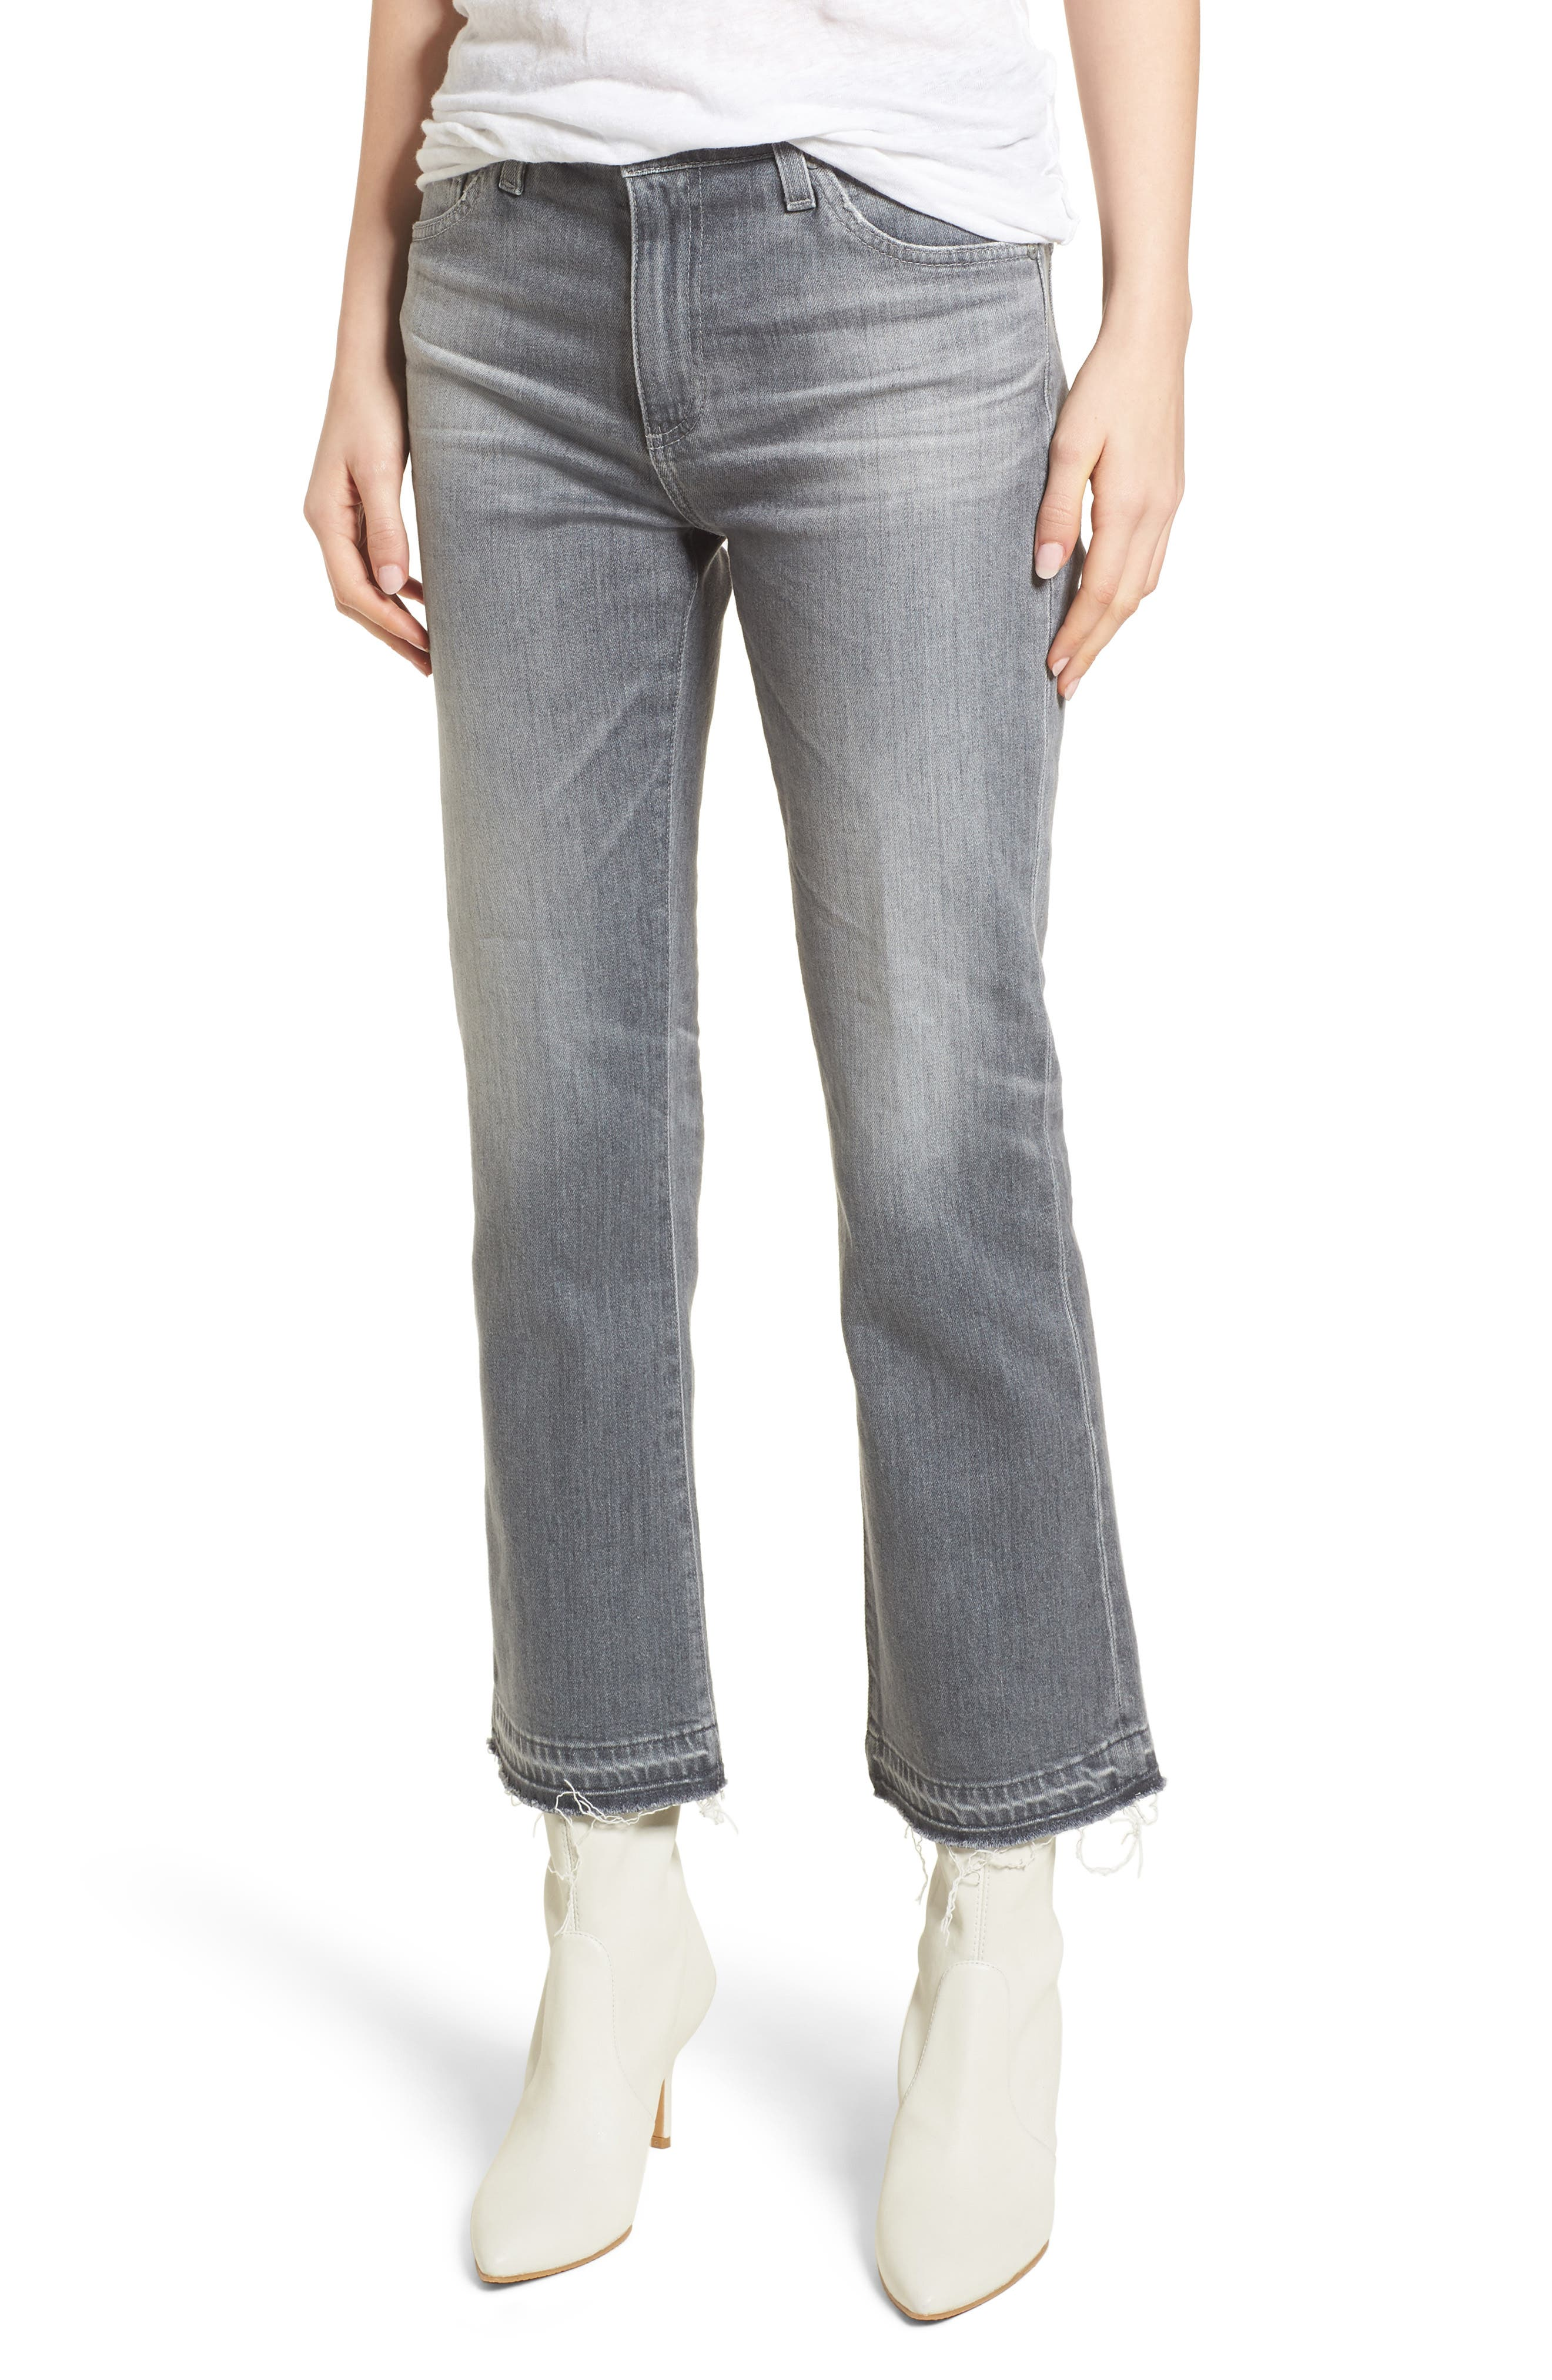 Alternate Image 1 Selected - AG The Jodi Crop Flare Jeans (15 Years Grey Sulfur)